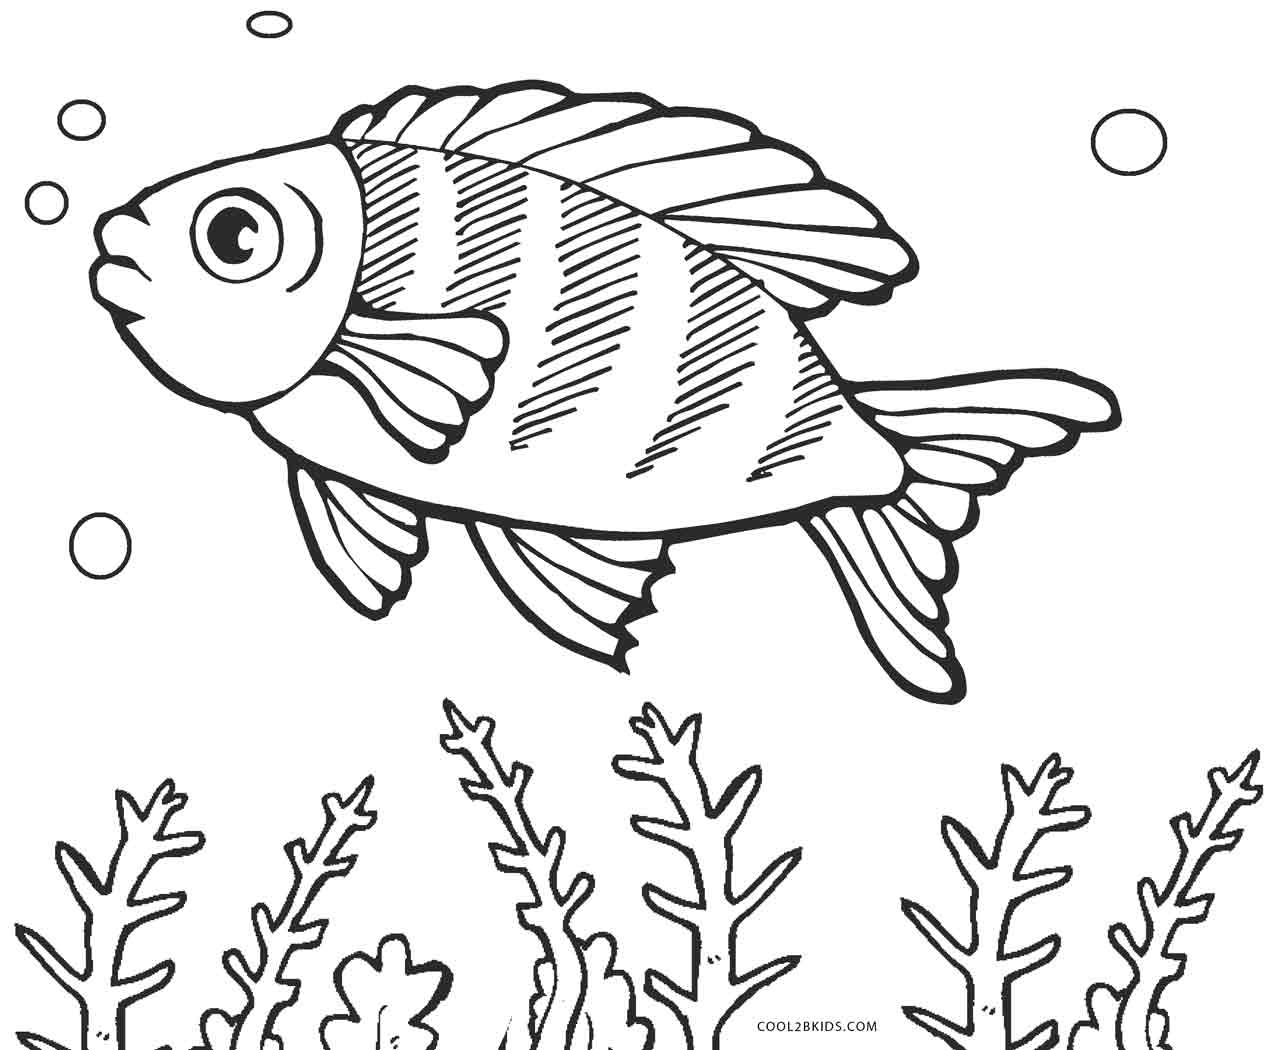 Coloring Pages: Free Printable Fish Coloring Pages For Kids